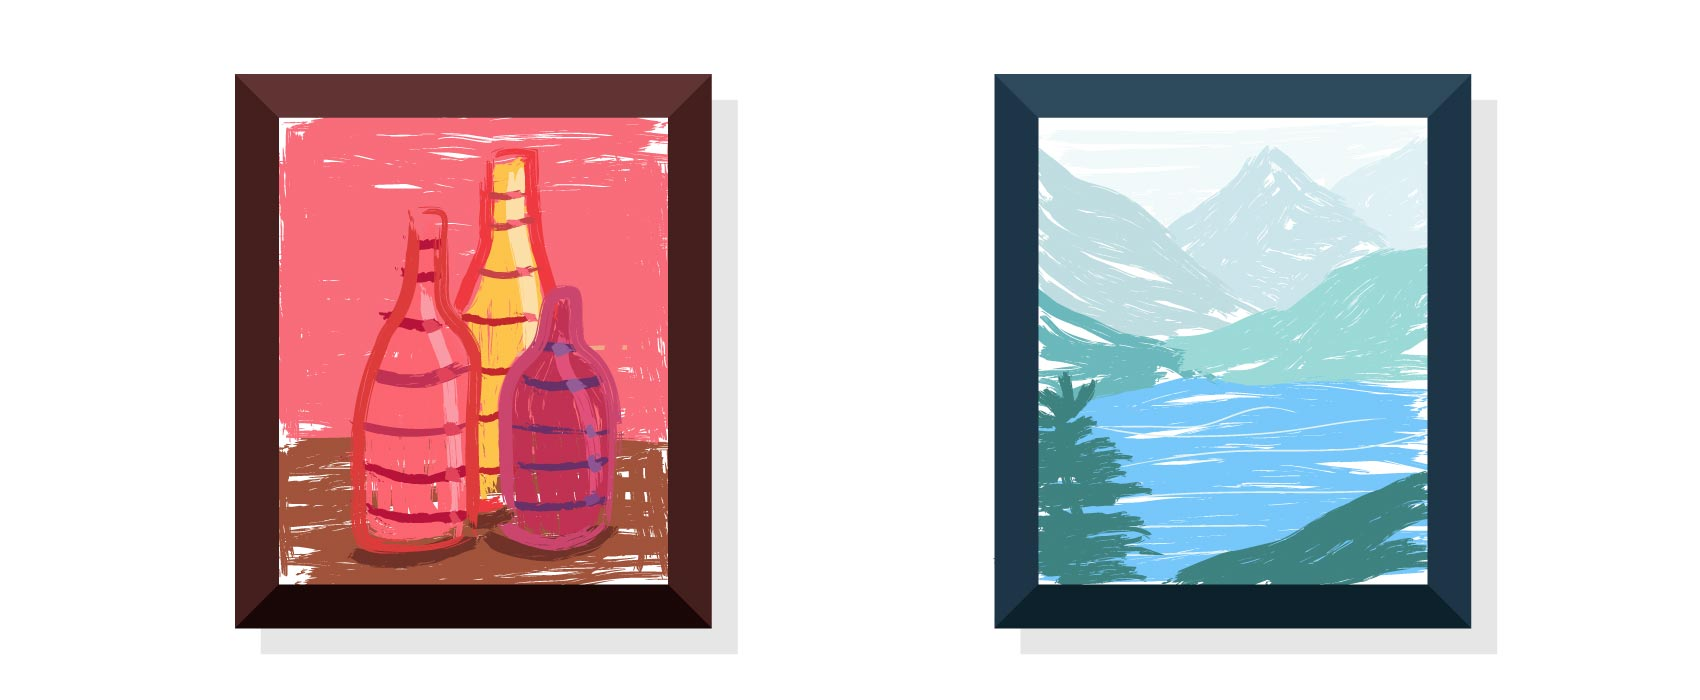 Warm and cool paintings framed with similar mood